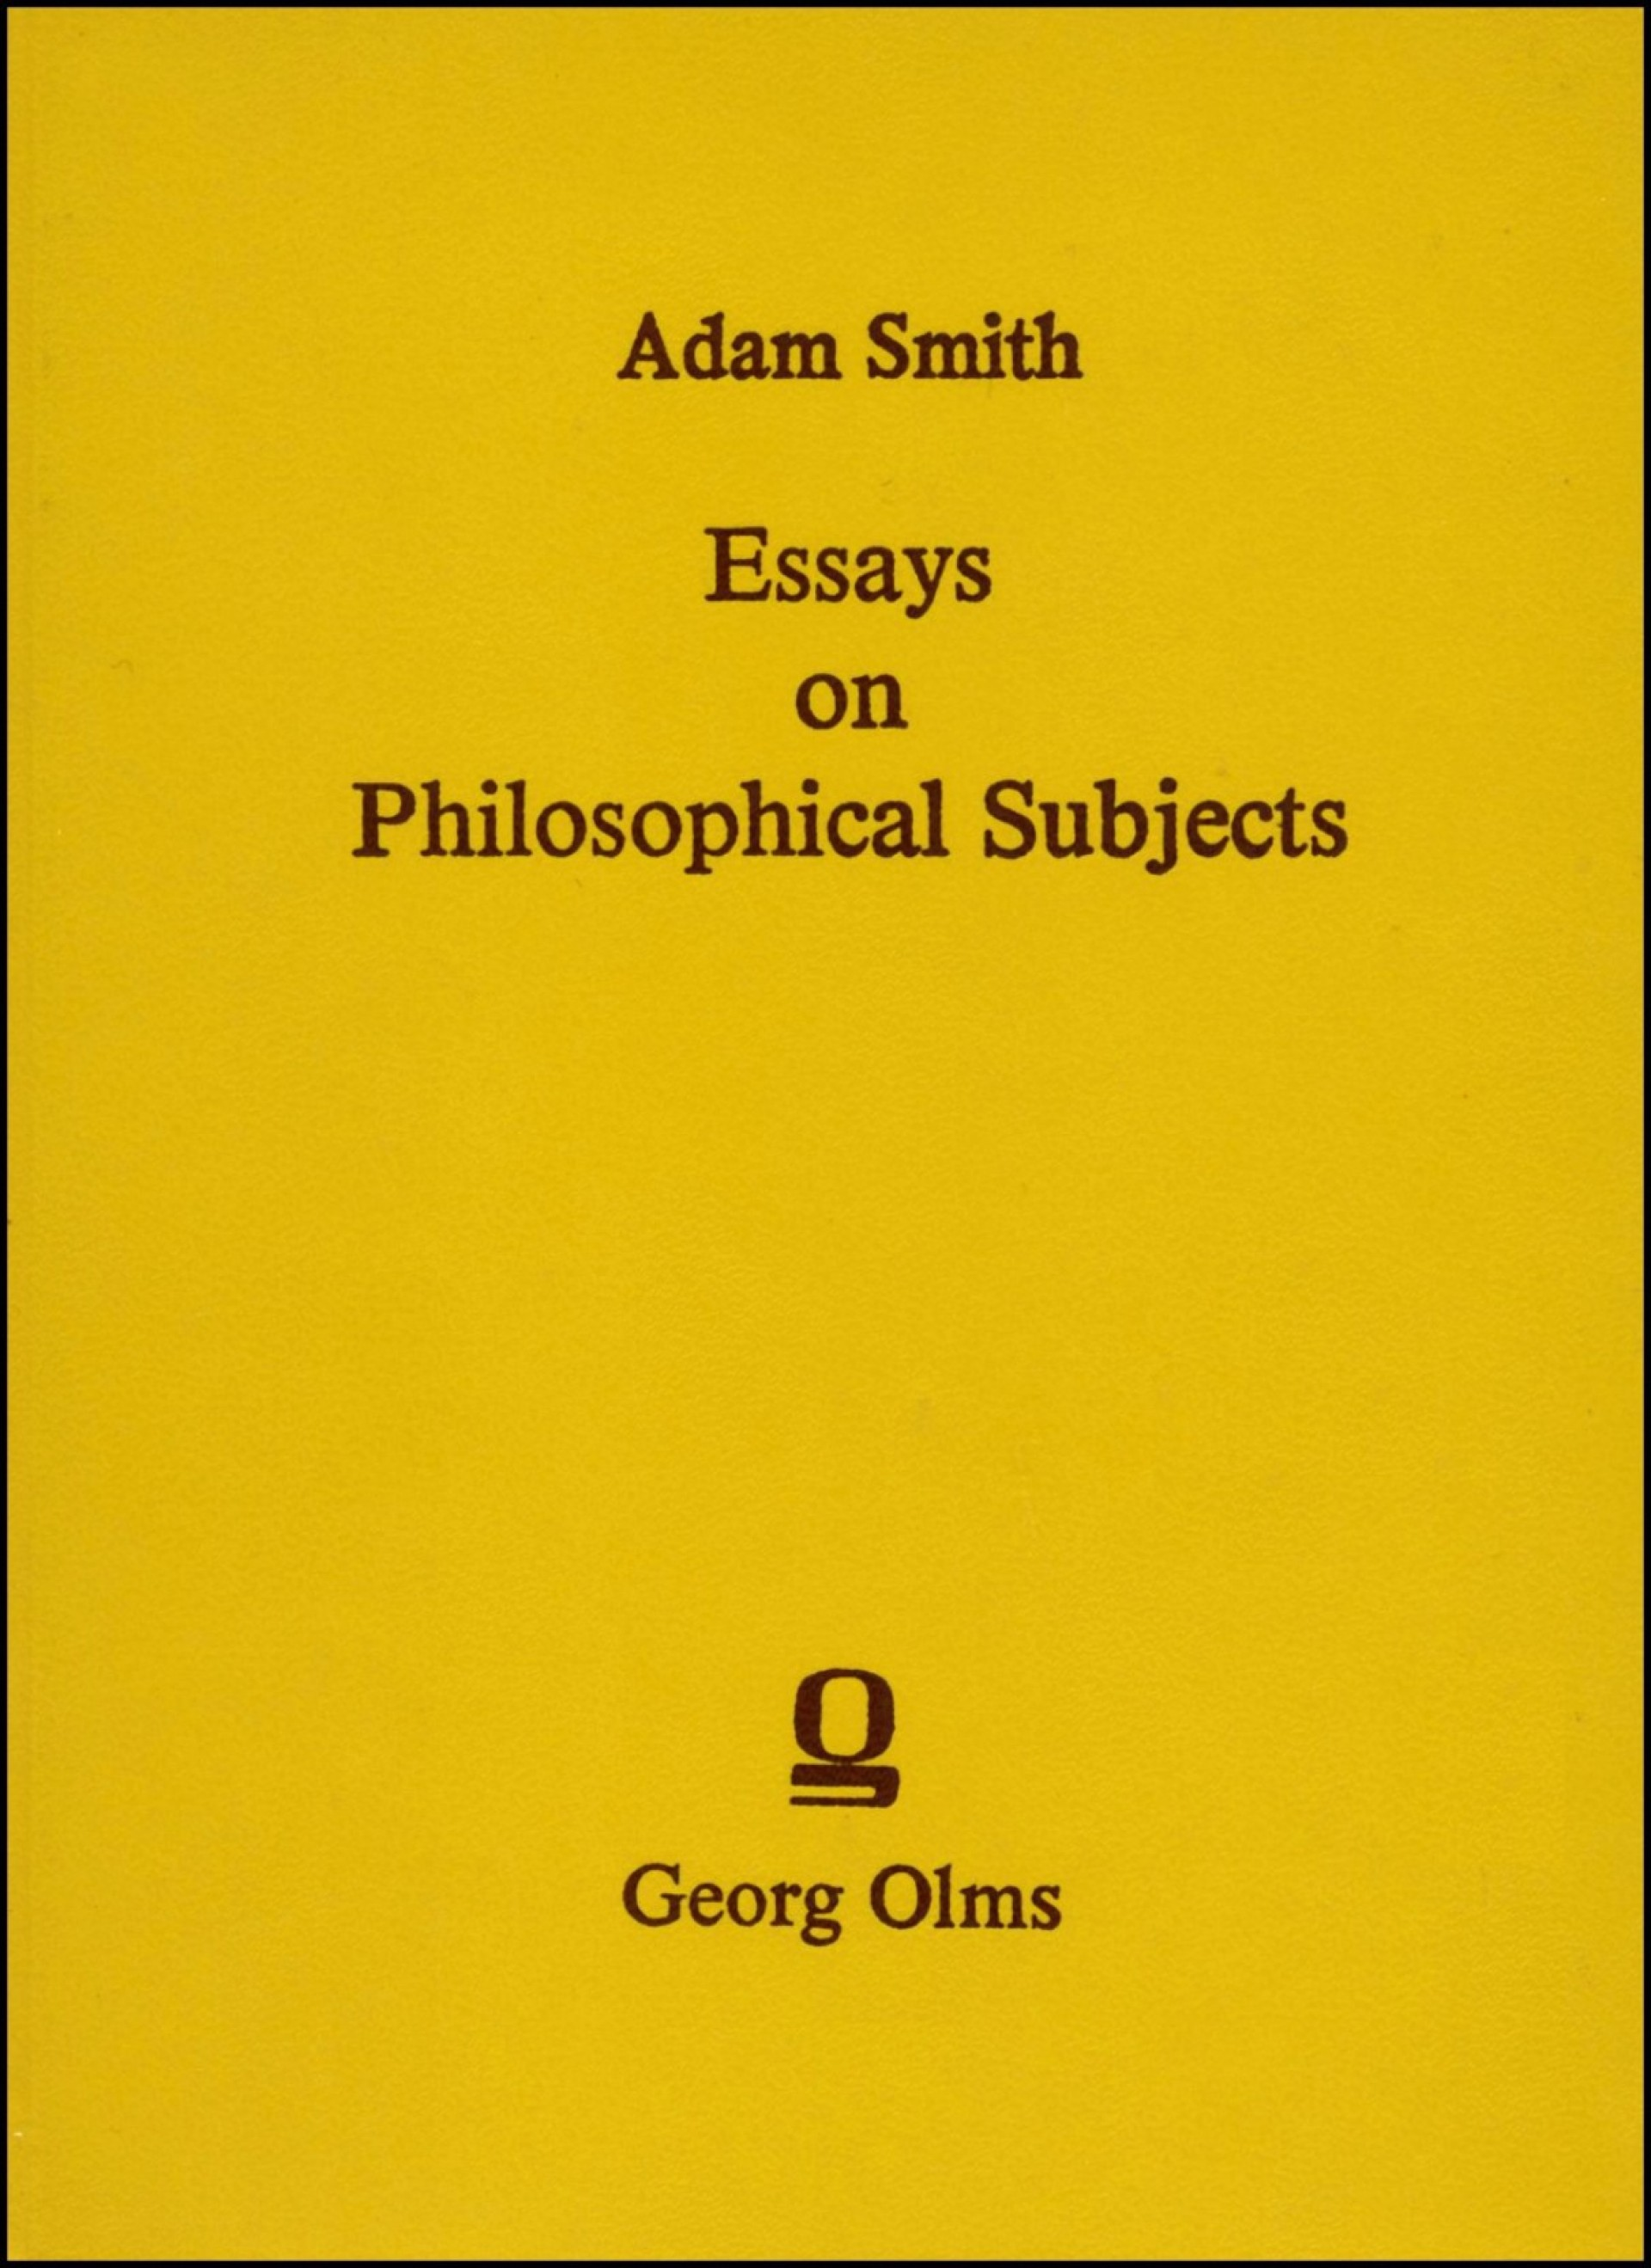 009 Essays On Philosophical Subjects Essay Example To Which Is Prefixed An Account Original Best Summary Adam Smith 1920